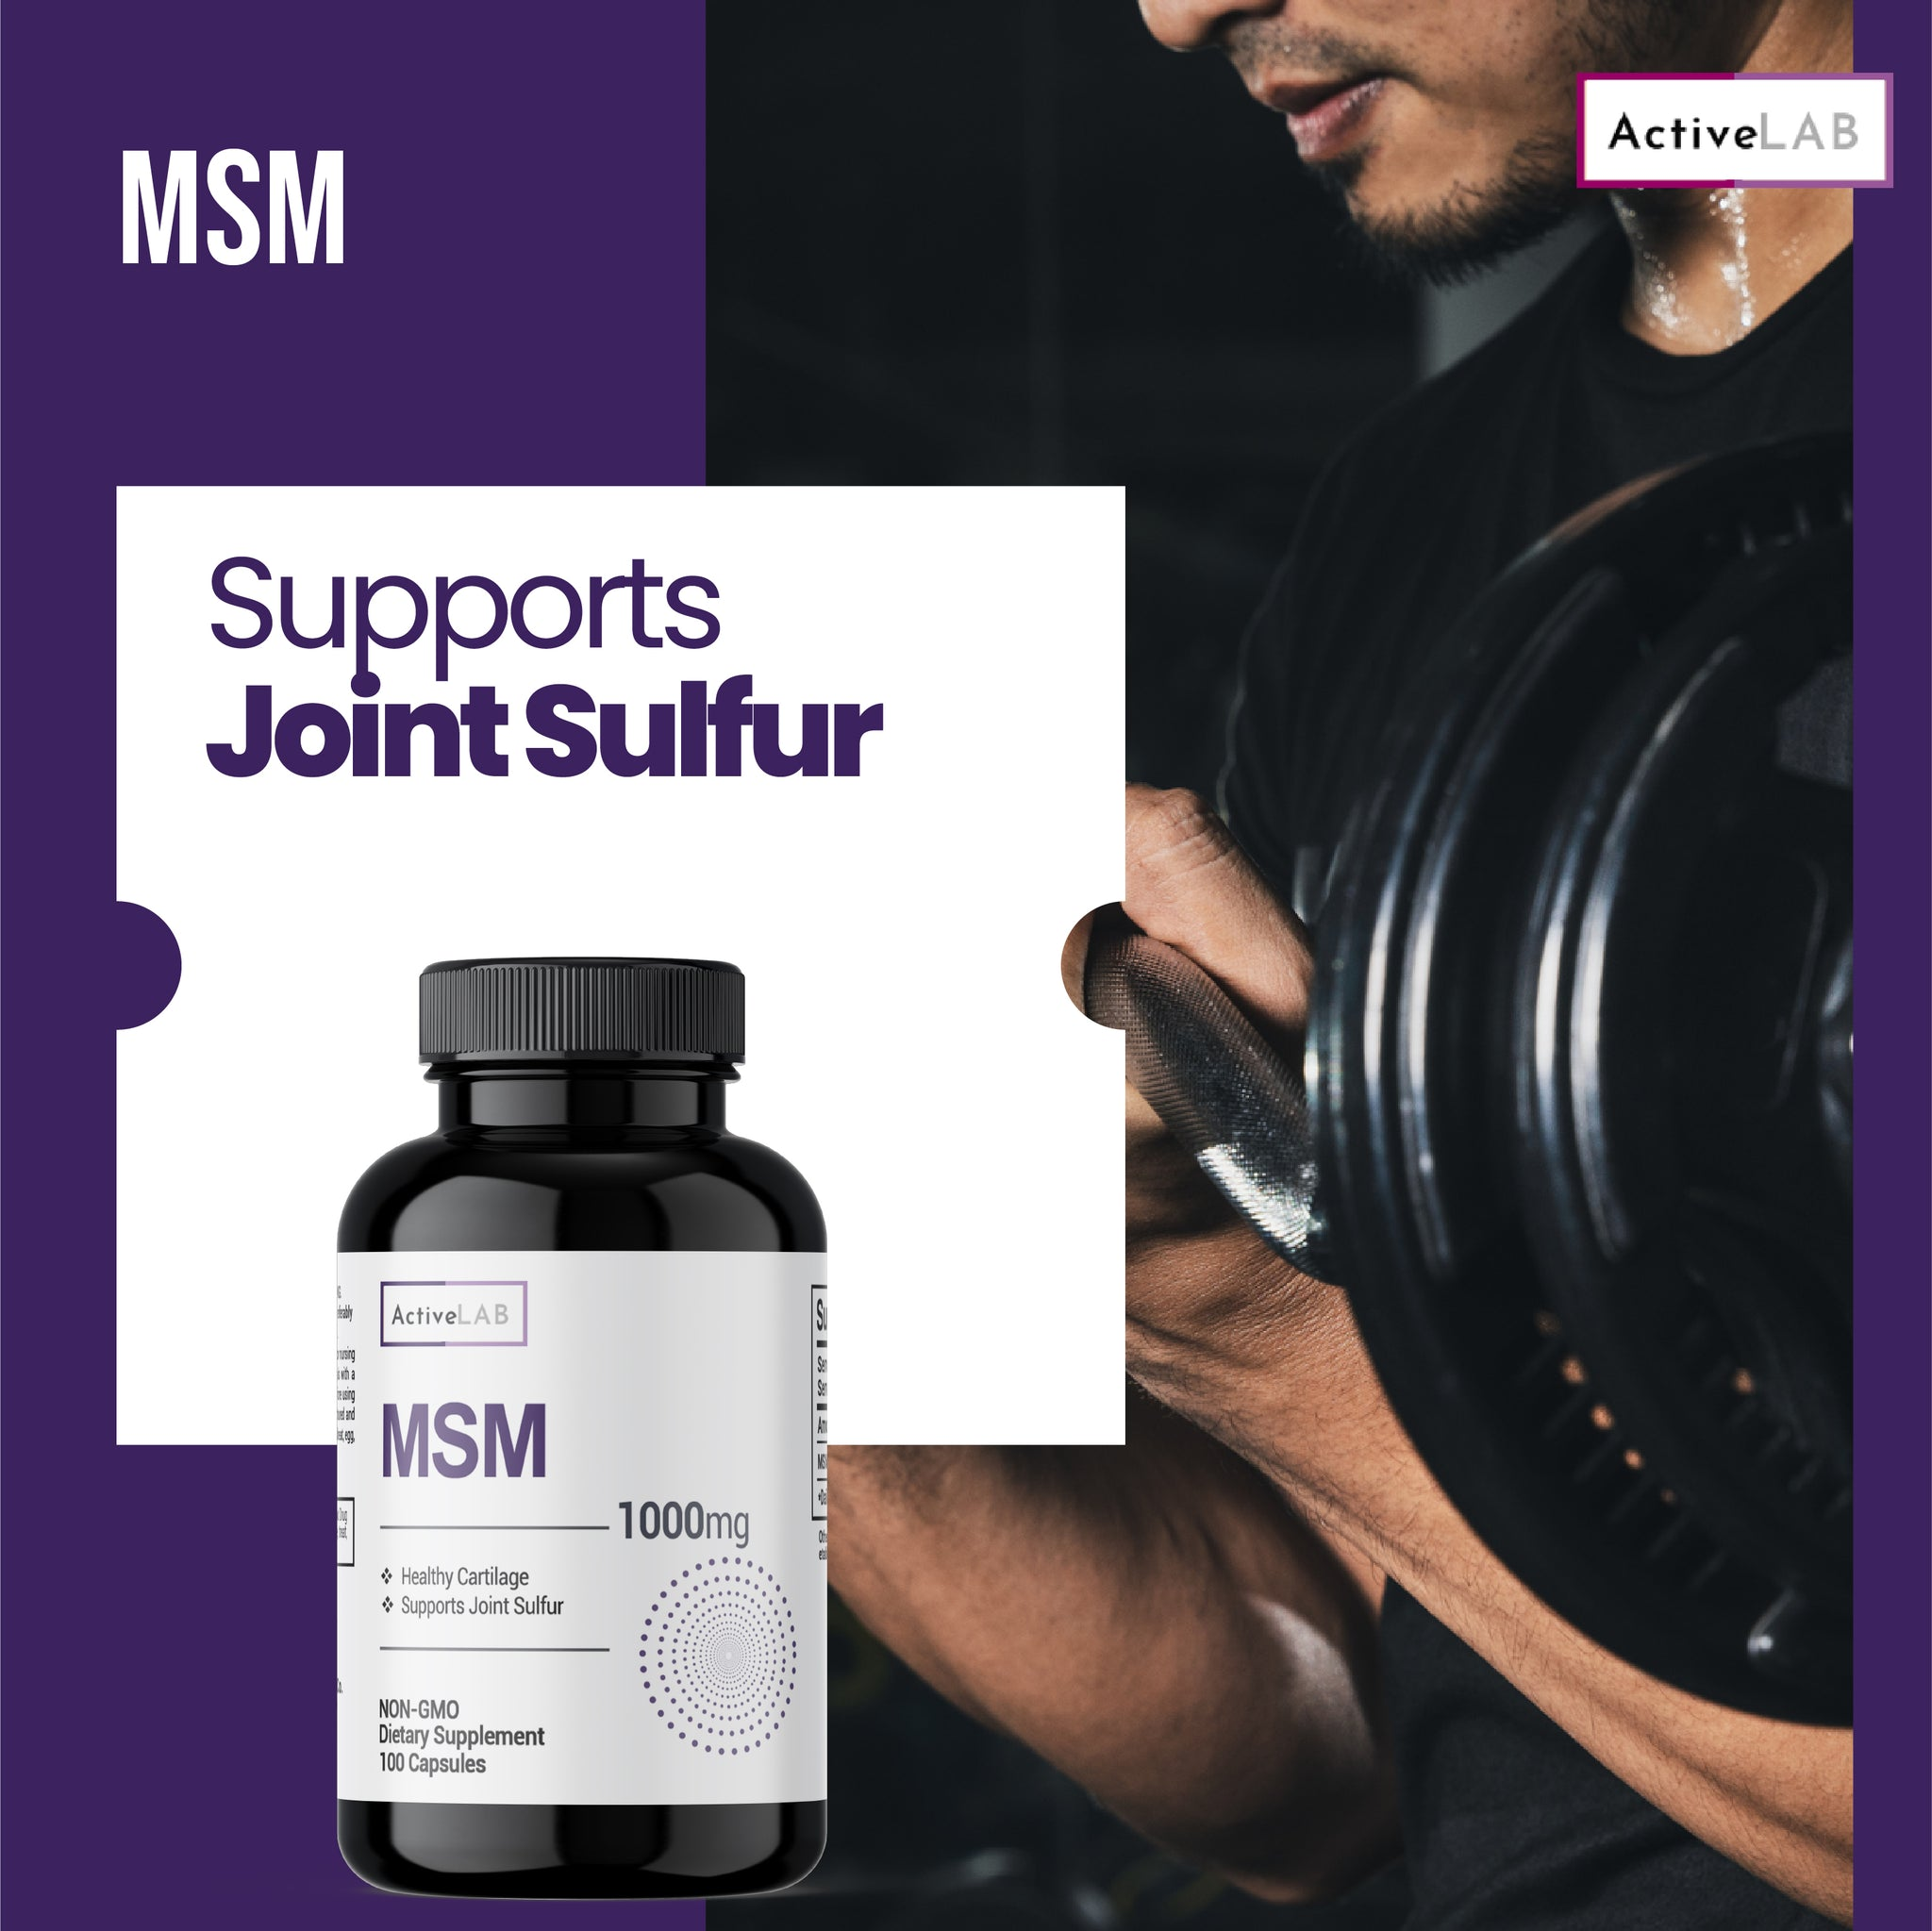 MSM (methylsulfonylmethane) 1000mg